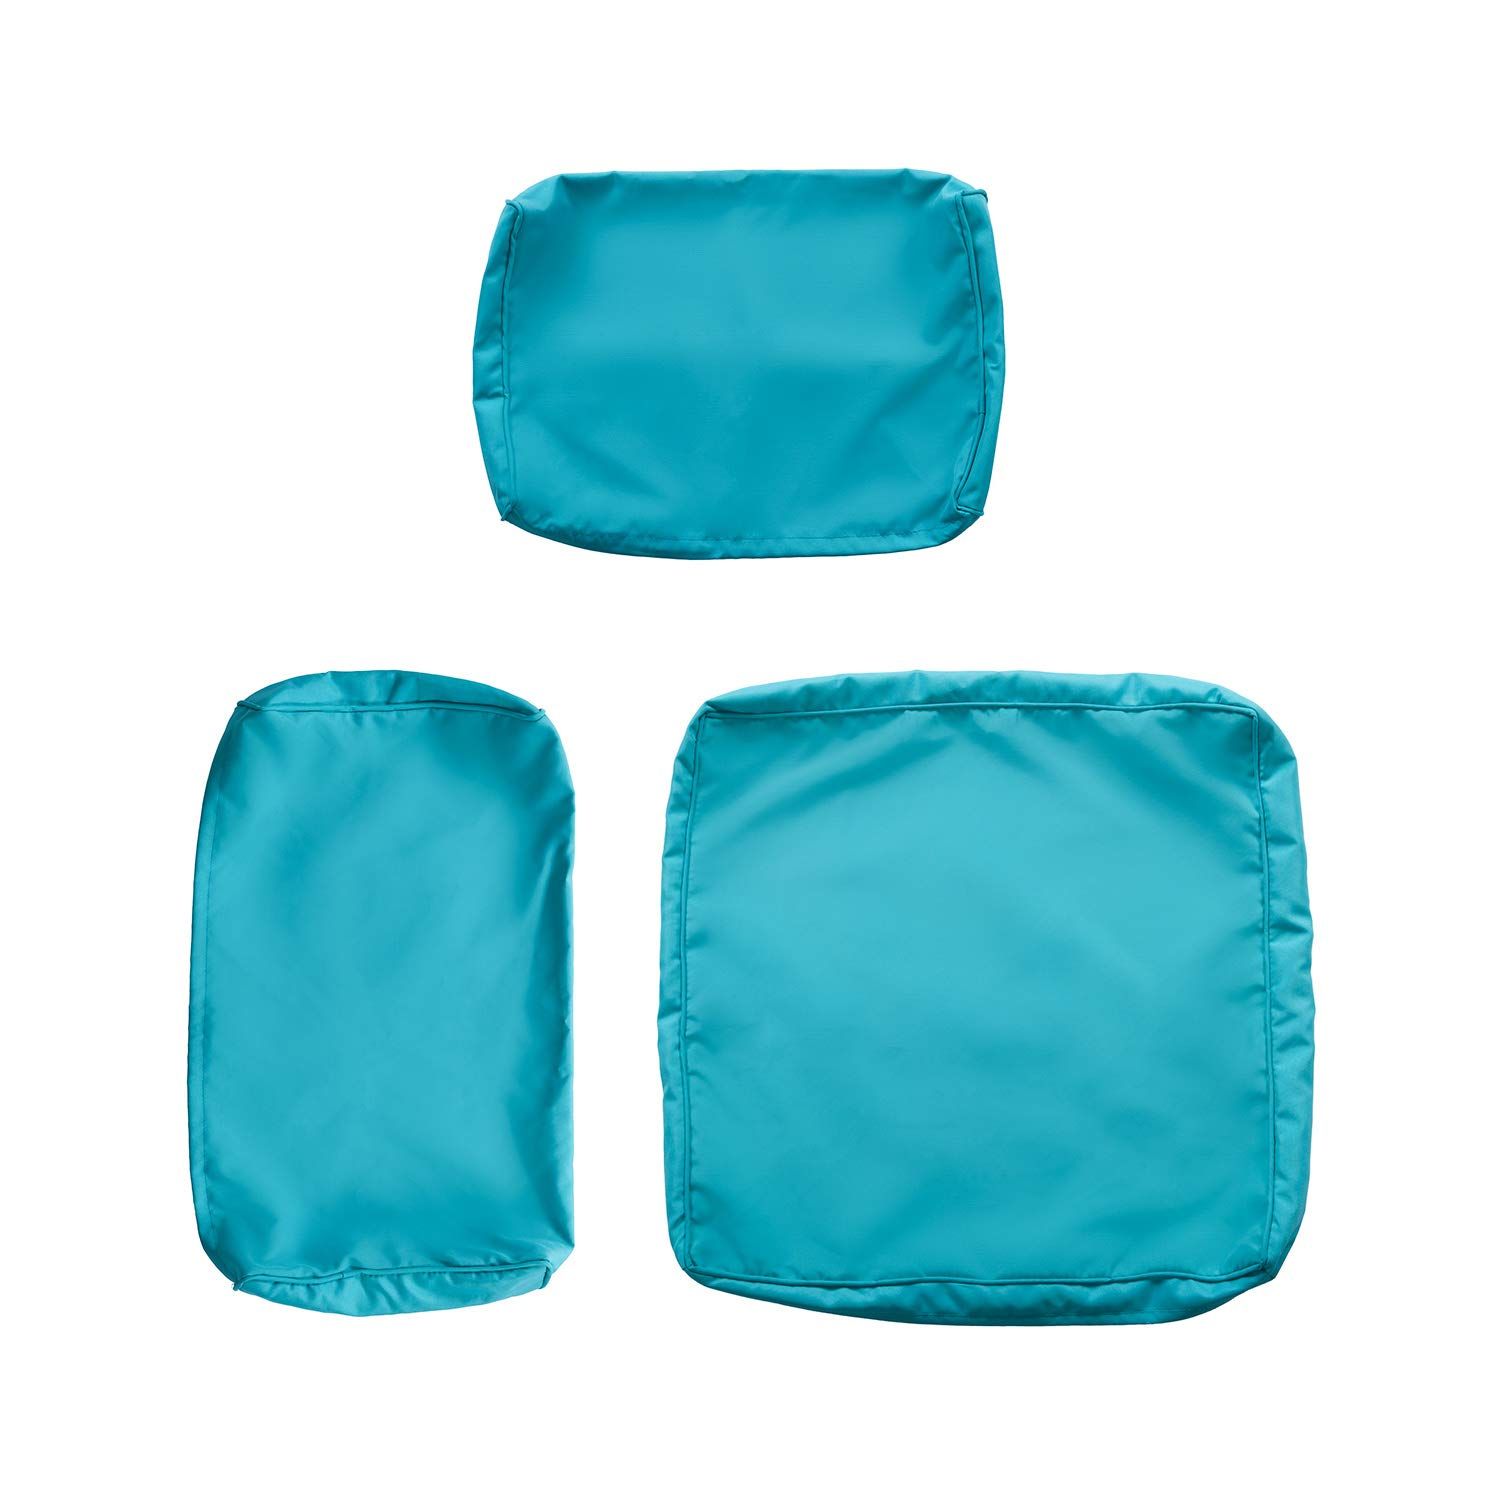 Kinsunny Peach Tree 7 PCs Outdoor Patio Wicker Sofa Chair Washable Cushions Pillow Replacement Covers for Seat and Back, Turquoise